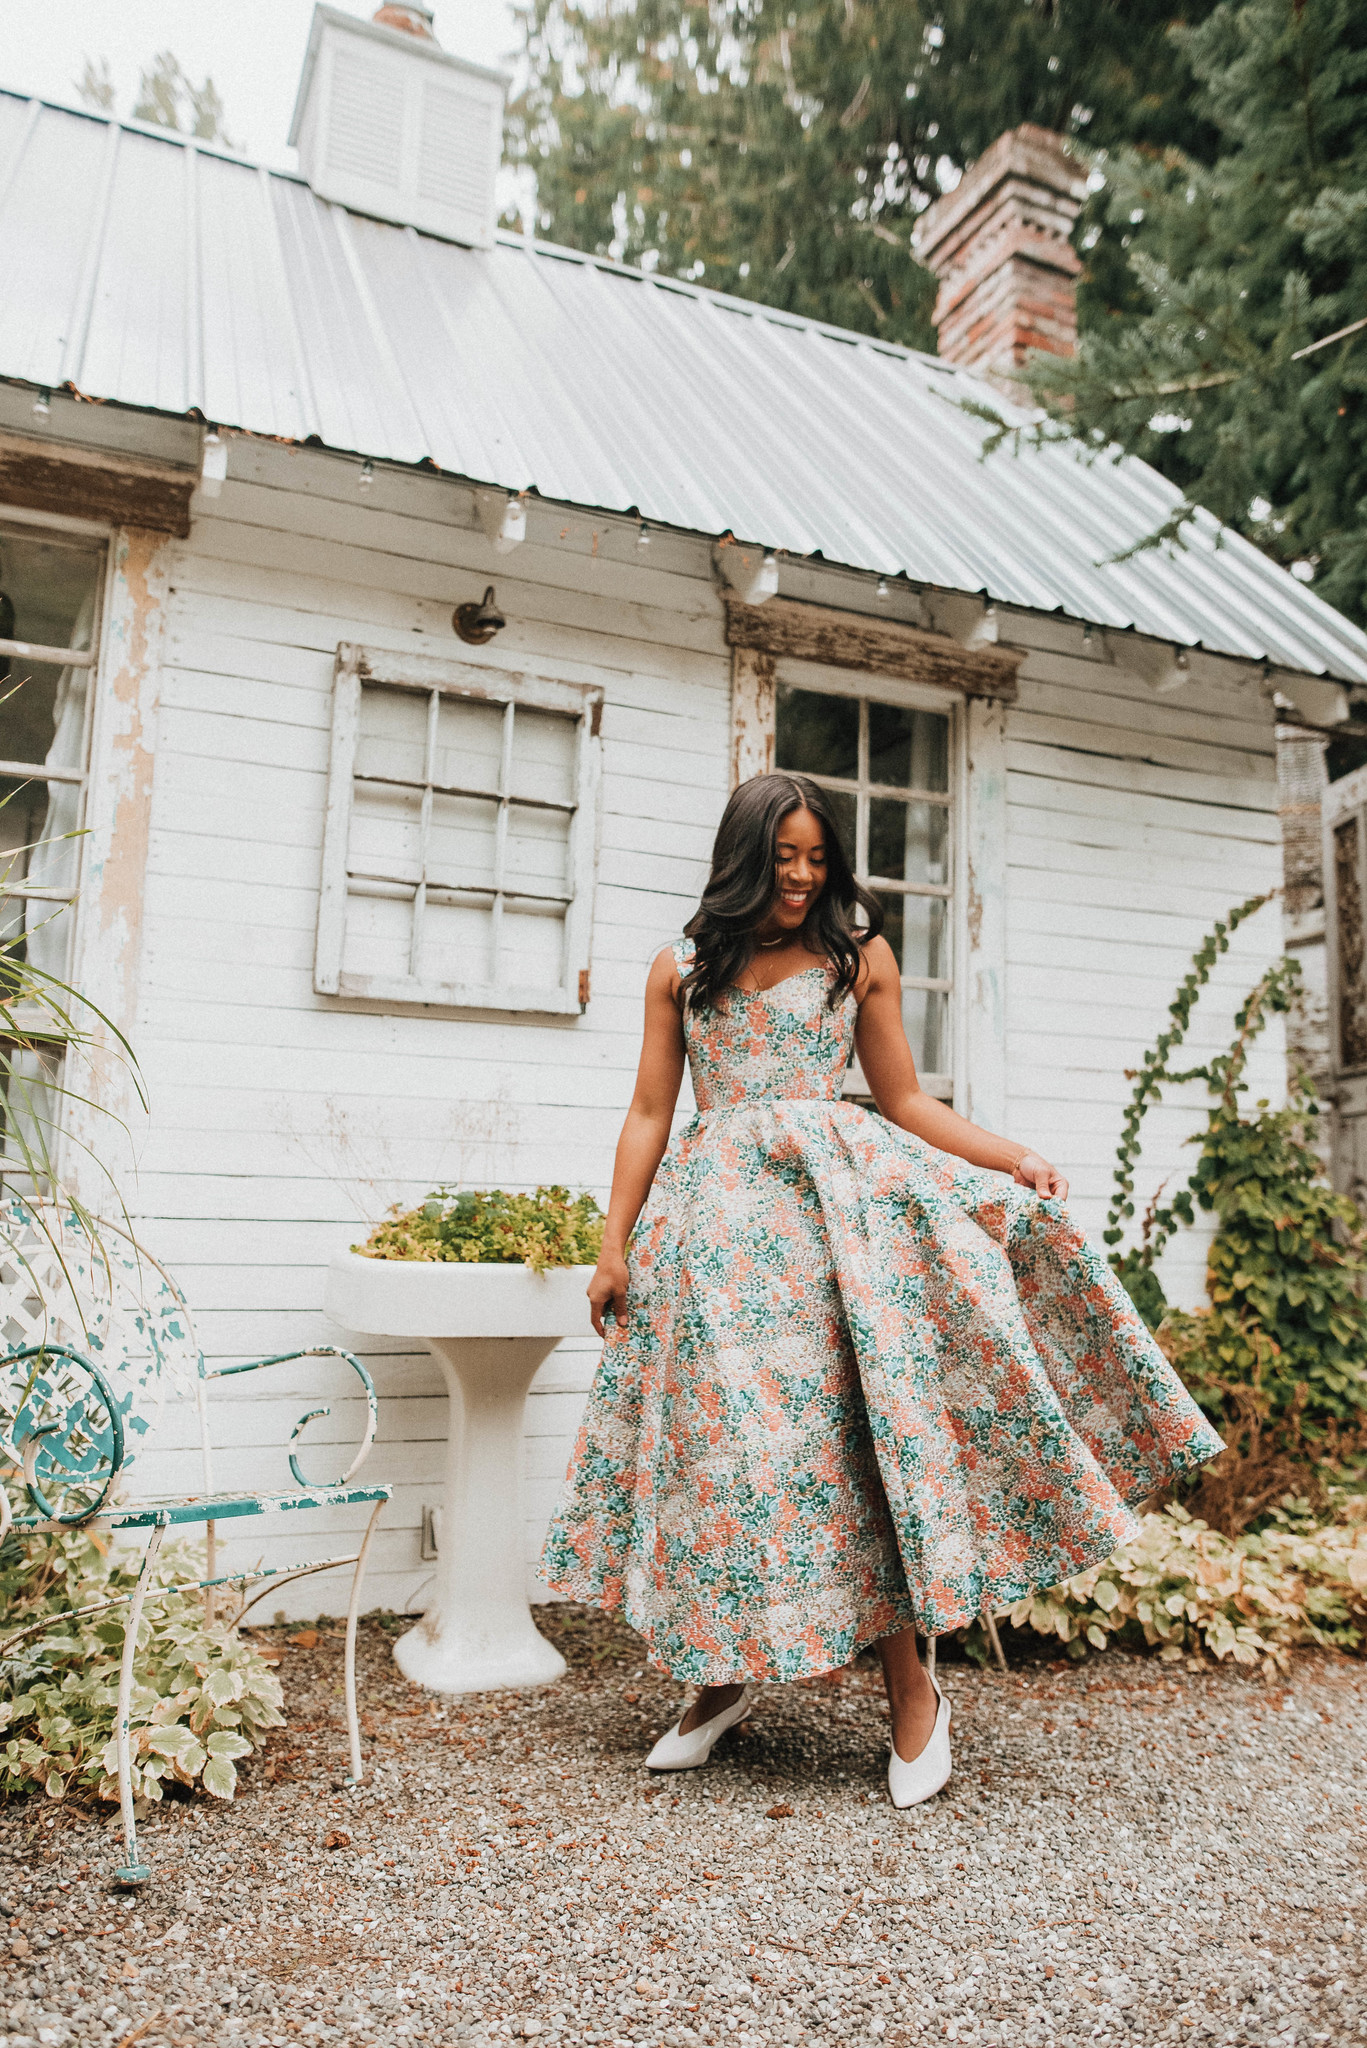 Little White House in West Seattle - Engagement photo shoot ideas - image from www.emmasedition.com